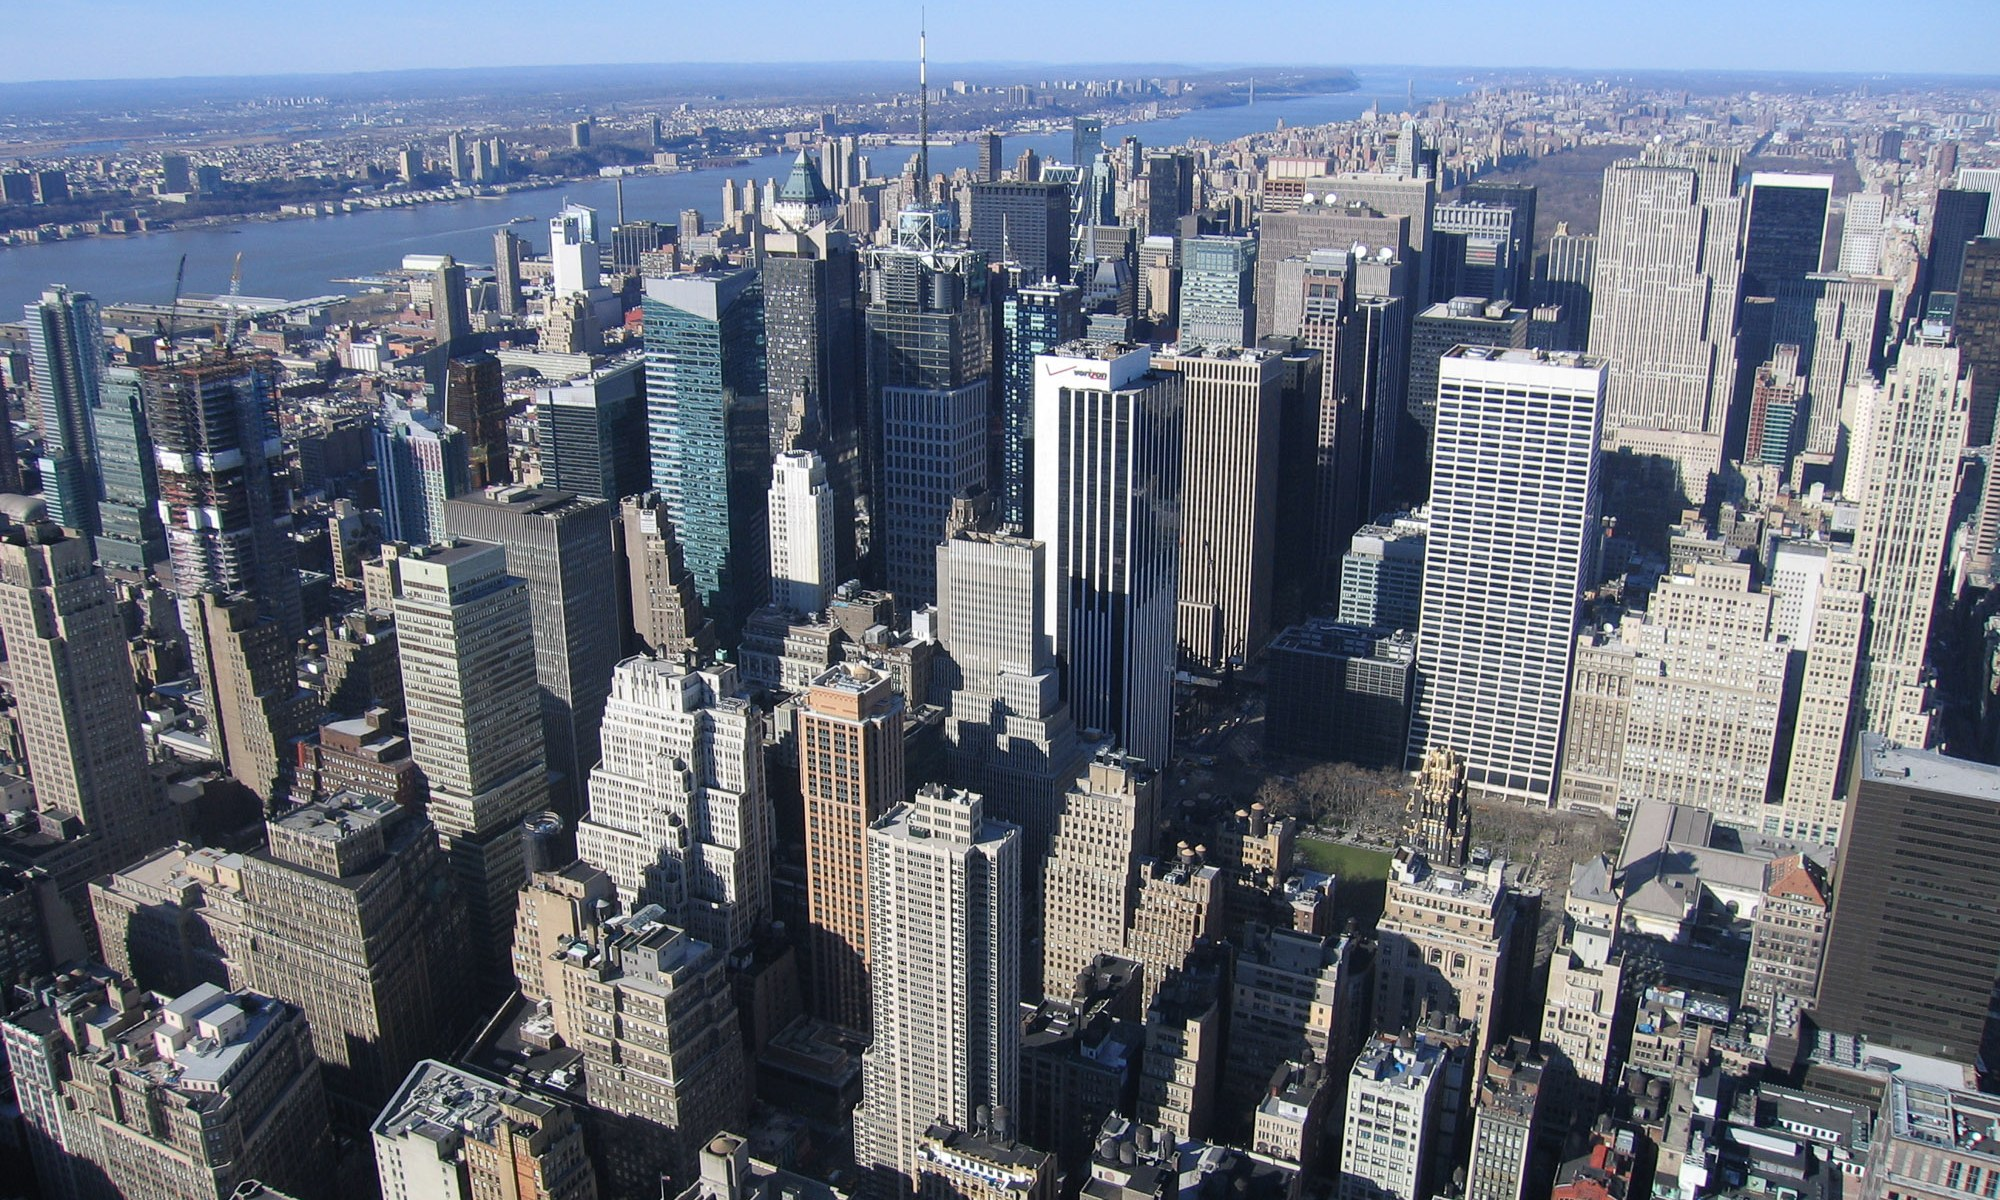 View from the Empire State Building - New York